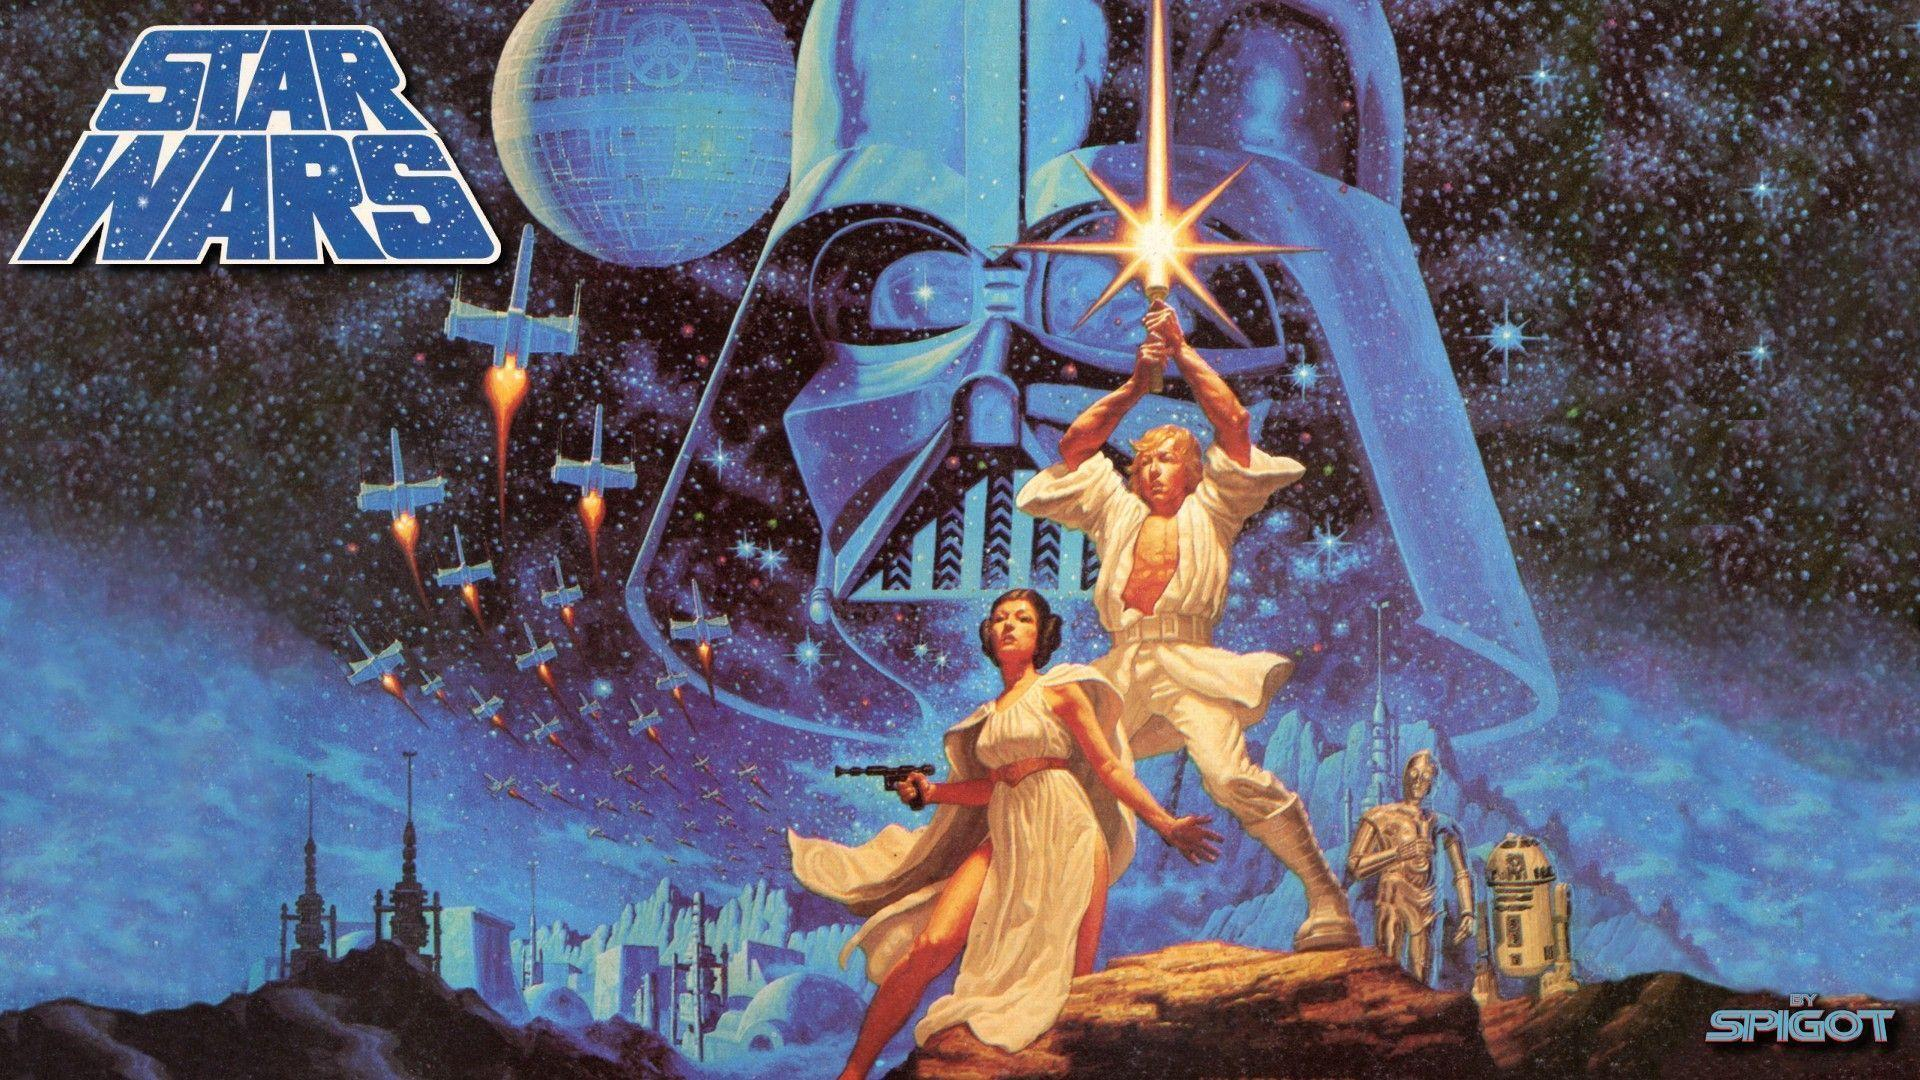 New Classic Star Wars Wallpaper | George Spigot's Blog